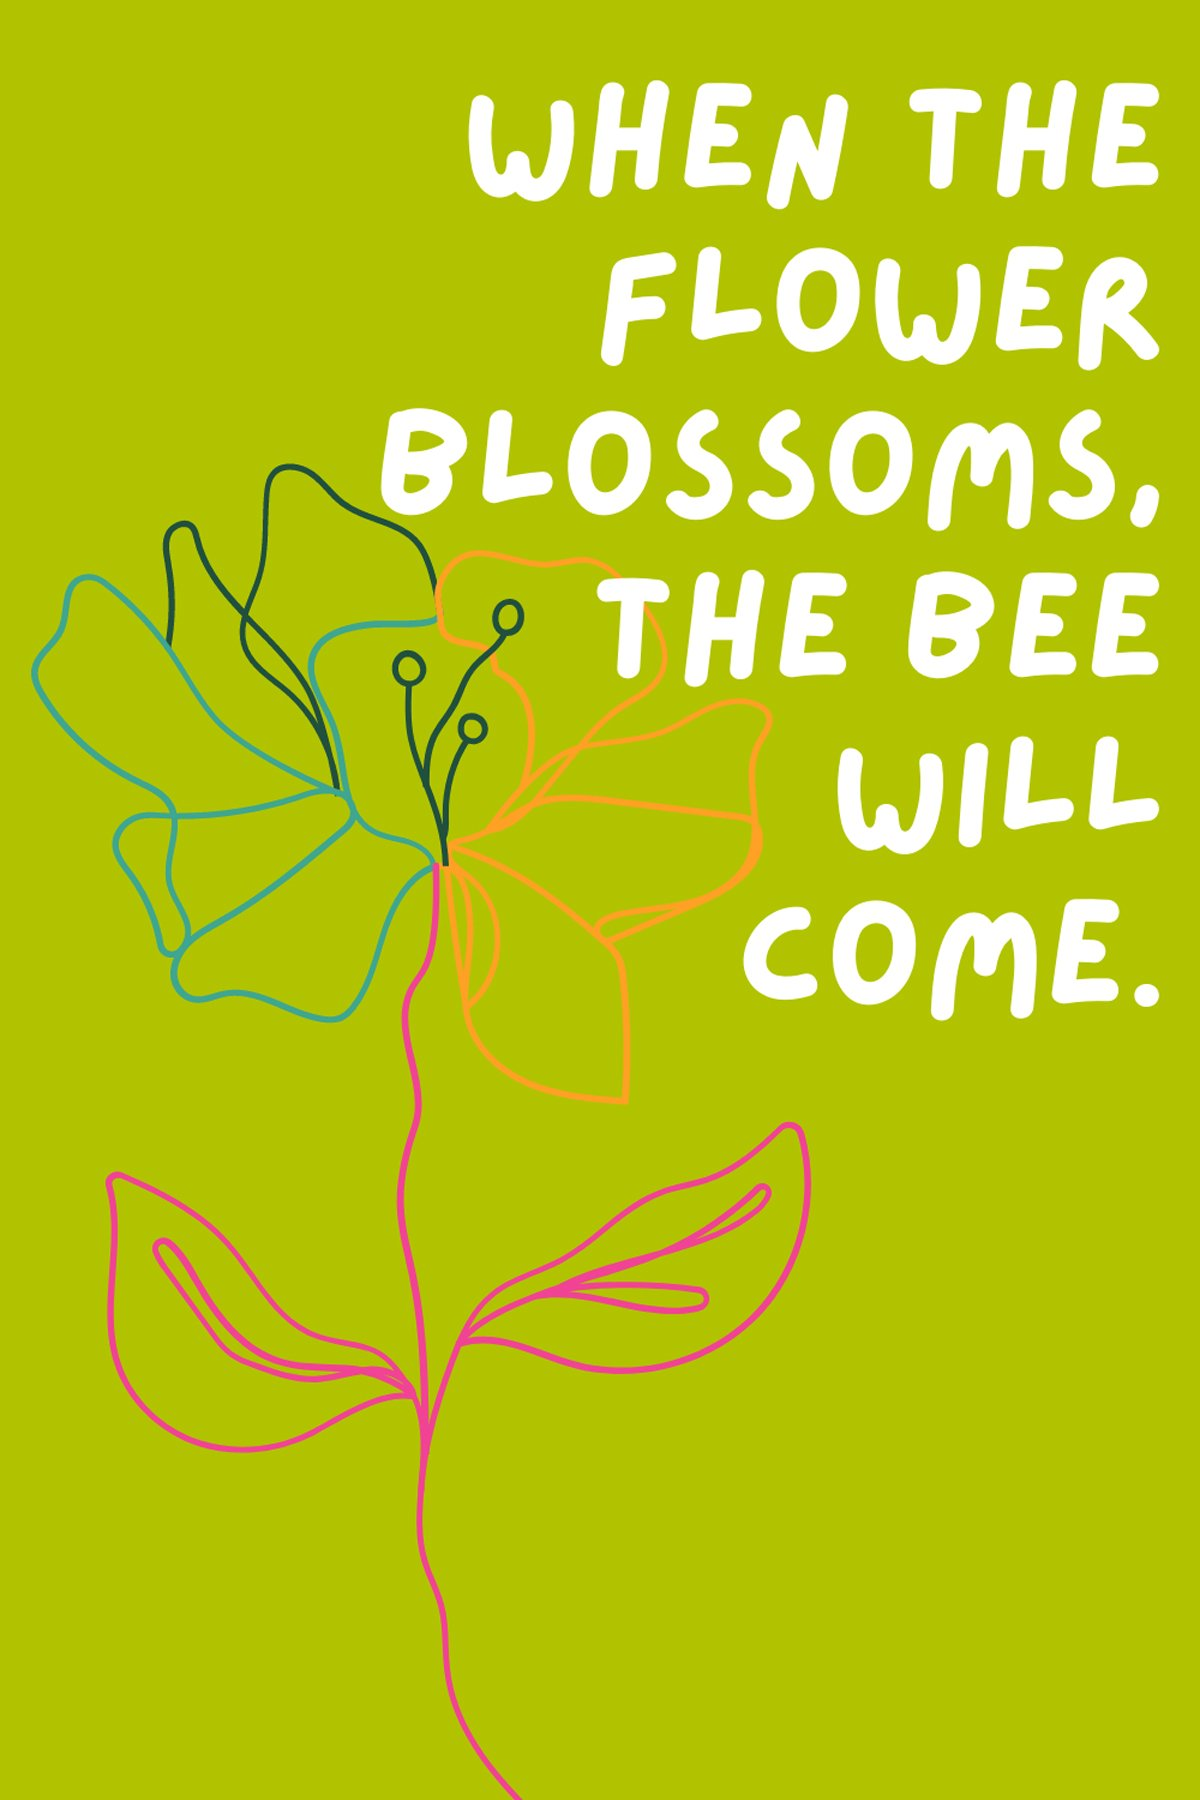 Flower Captions For Bees